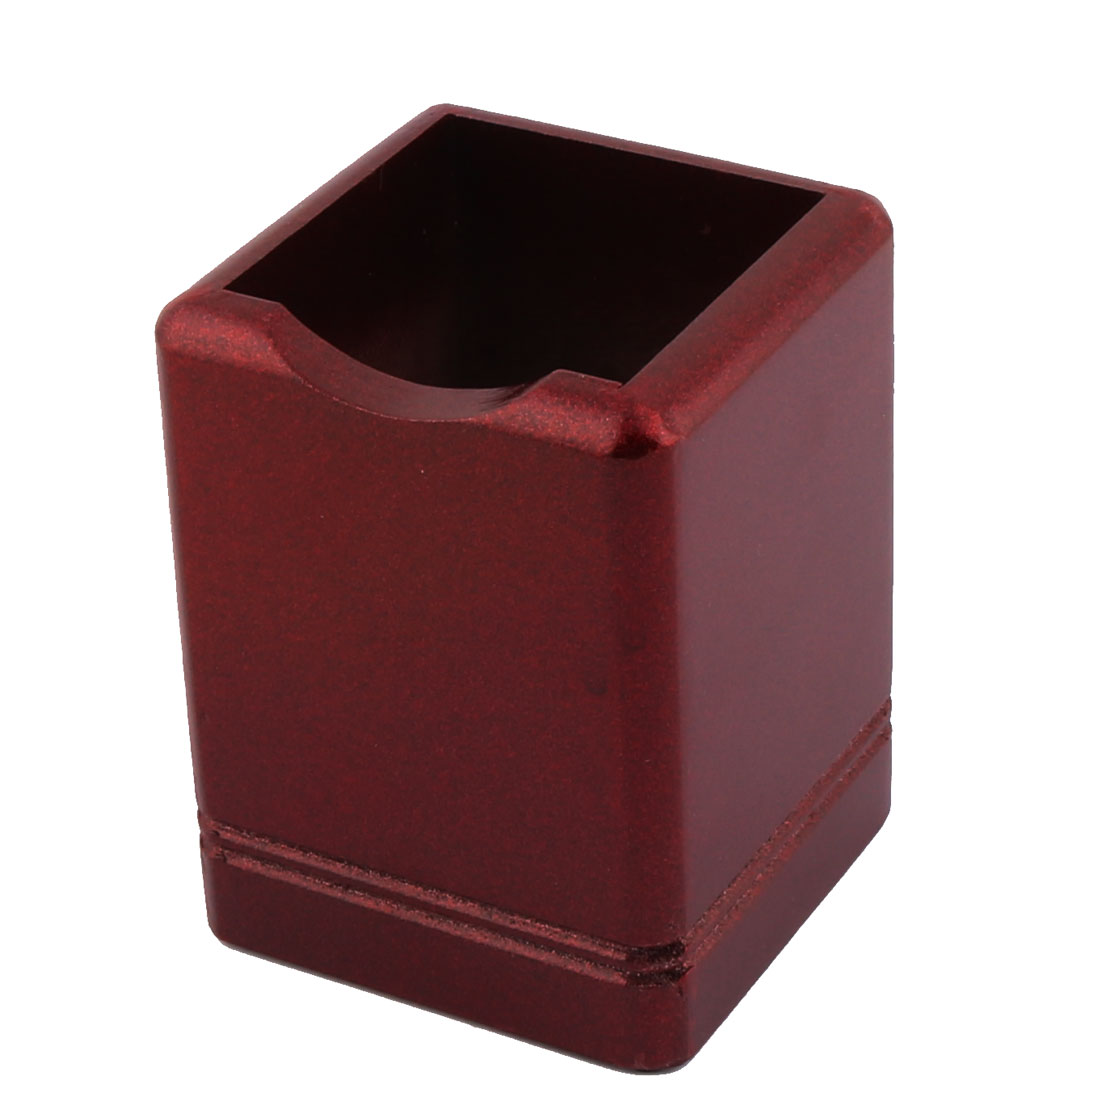 Wooden Cube Shaped Sequin Powder Ruler Pencil Pen Holder Organizer Box Wine Red